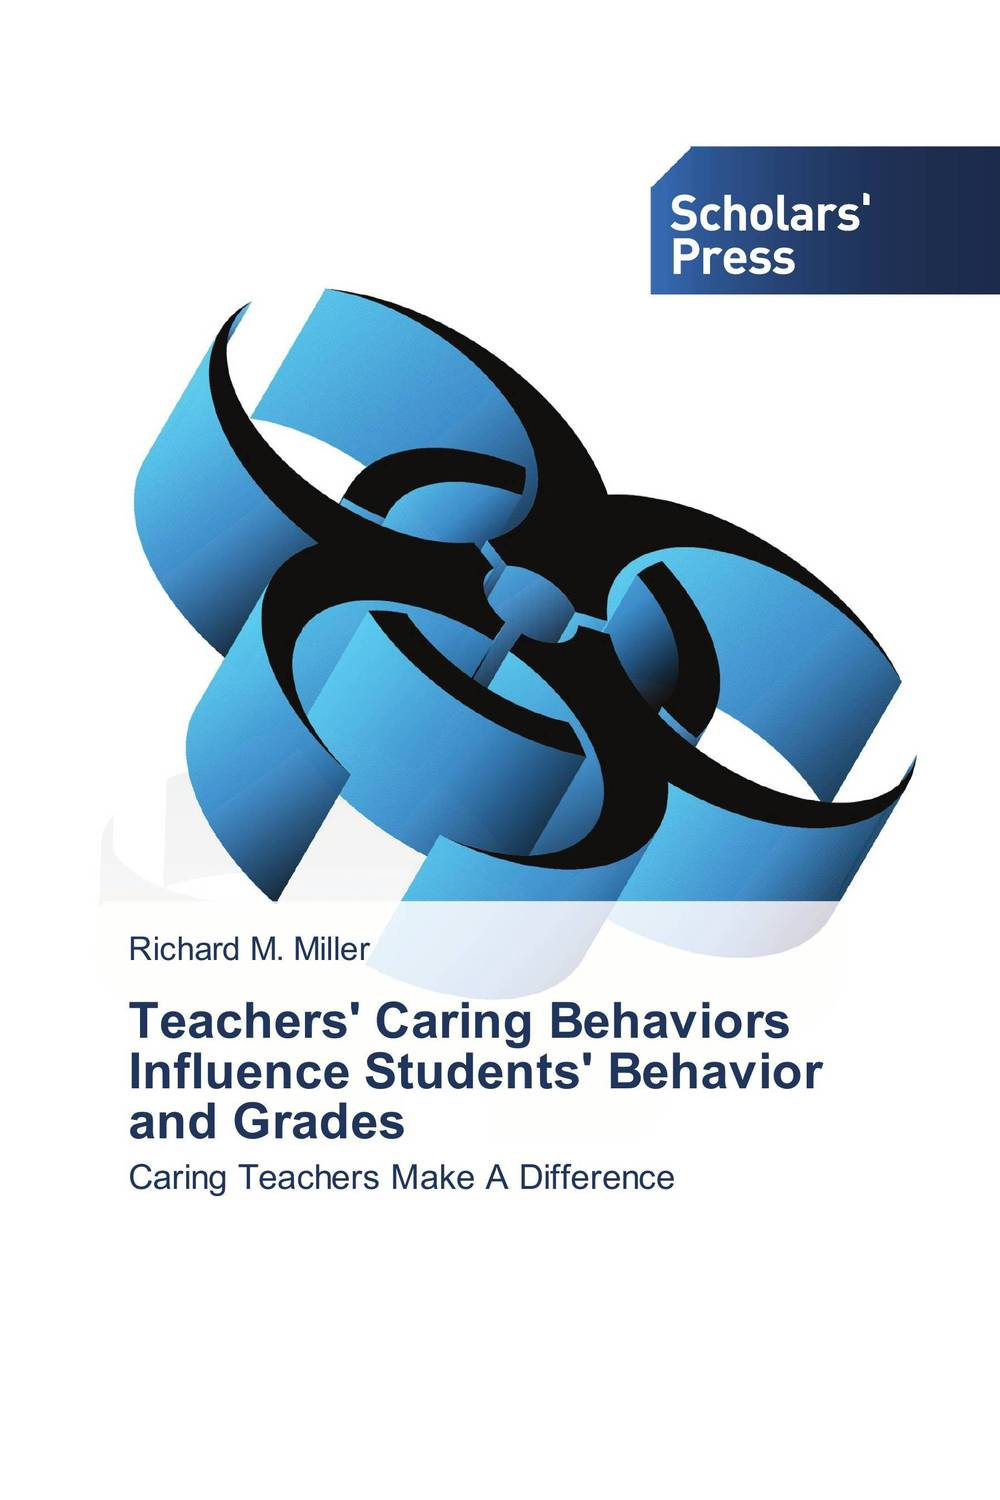 Teachers' Caring Behaviors Influence Students' Behavior and Grades sharing is caring